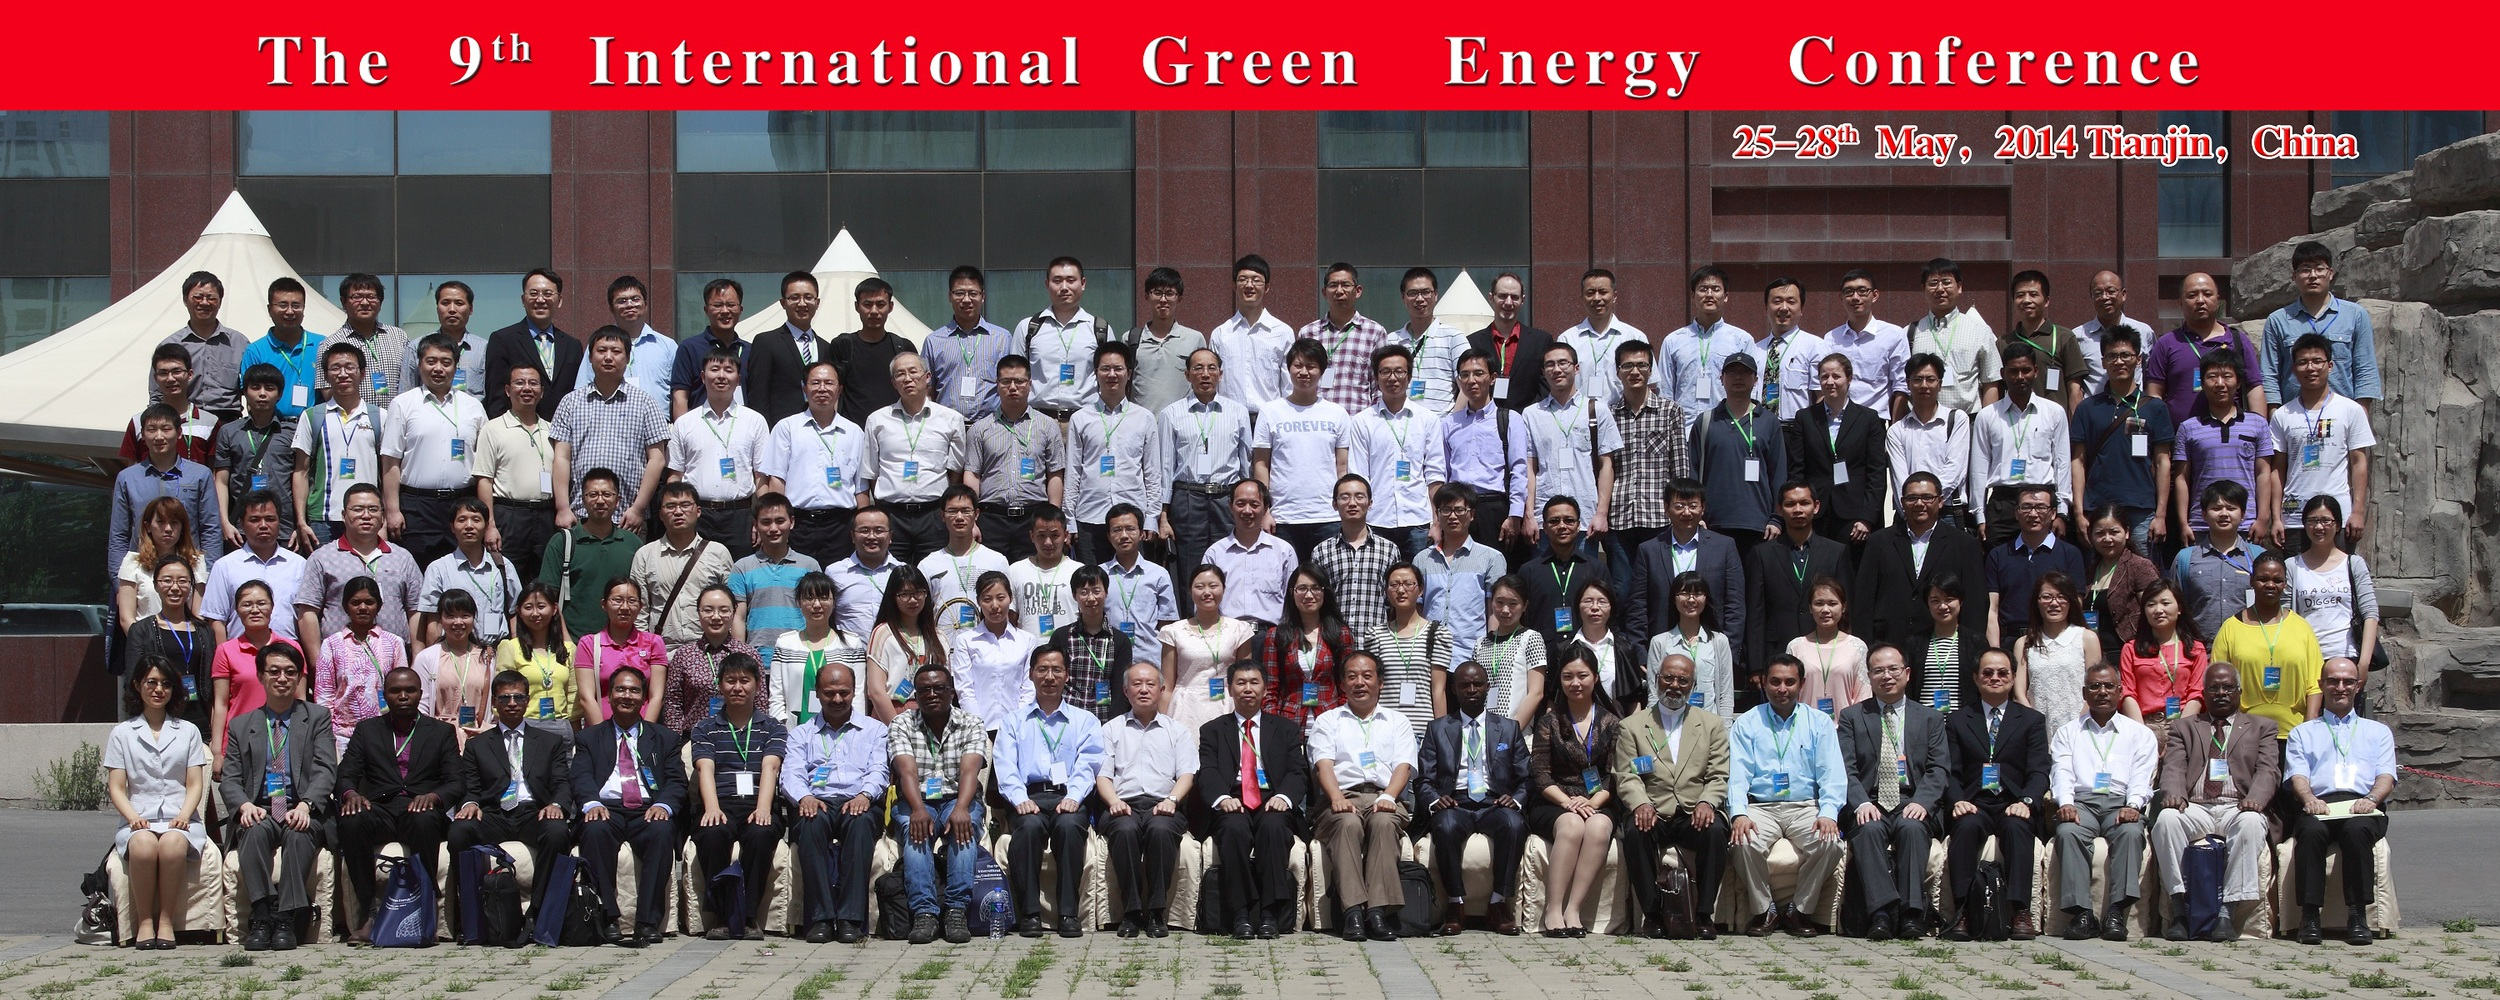 Group photo from the 9th International Green Energy Conference in Tianjin, China.